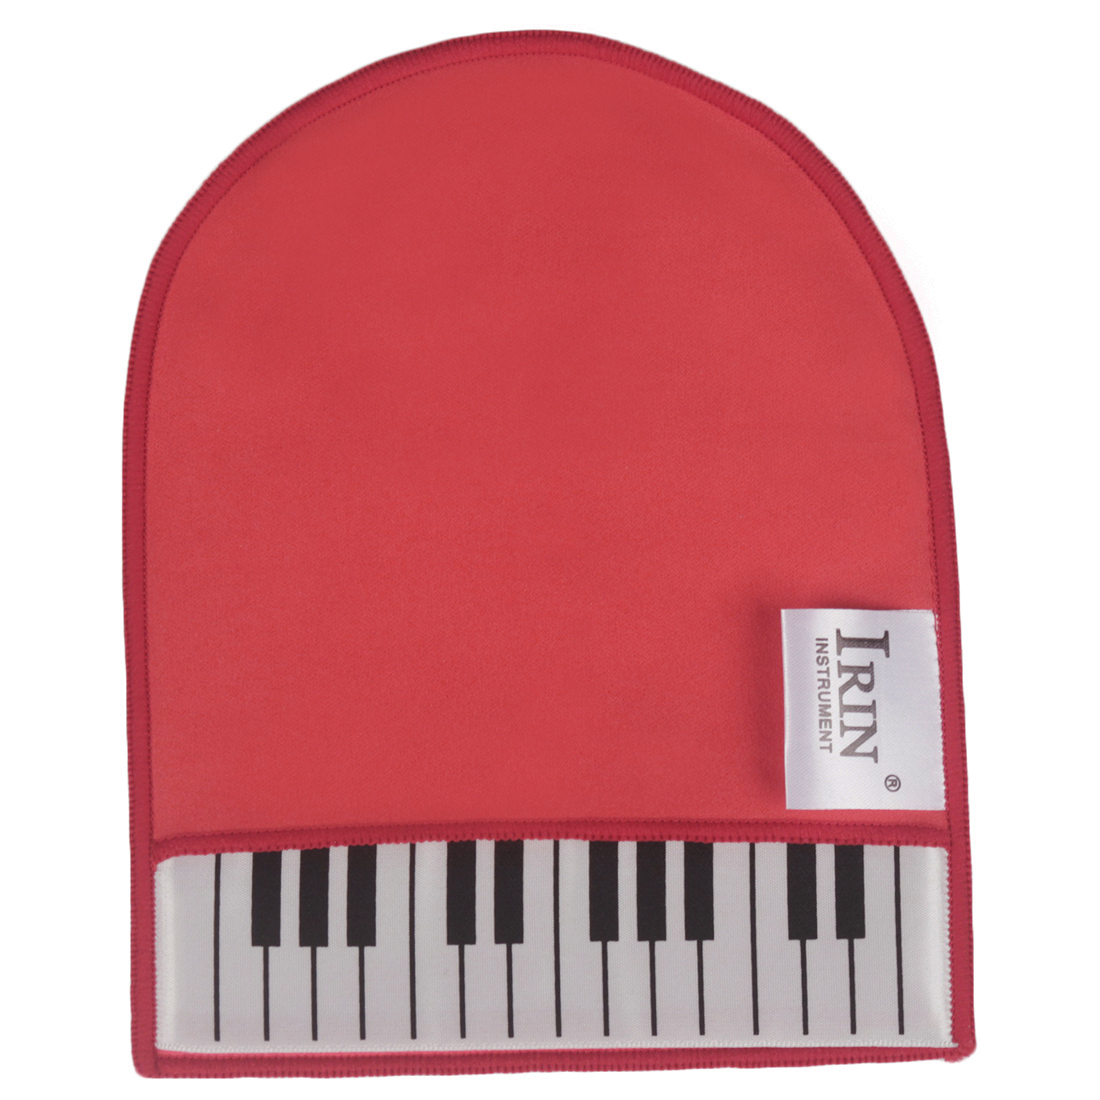 IRIN Piano Cleaning Cloth Wipes Cleaning Glove With Piano Keyboard Design Musical Instrument Duster Cleaning Care Tool